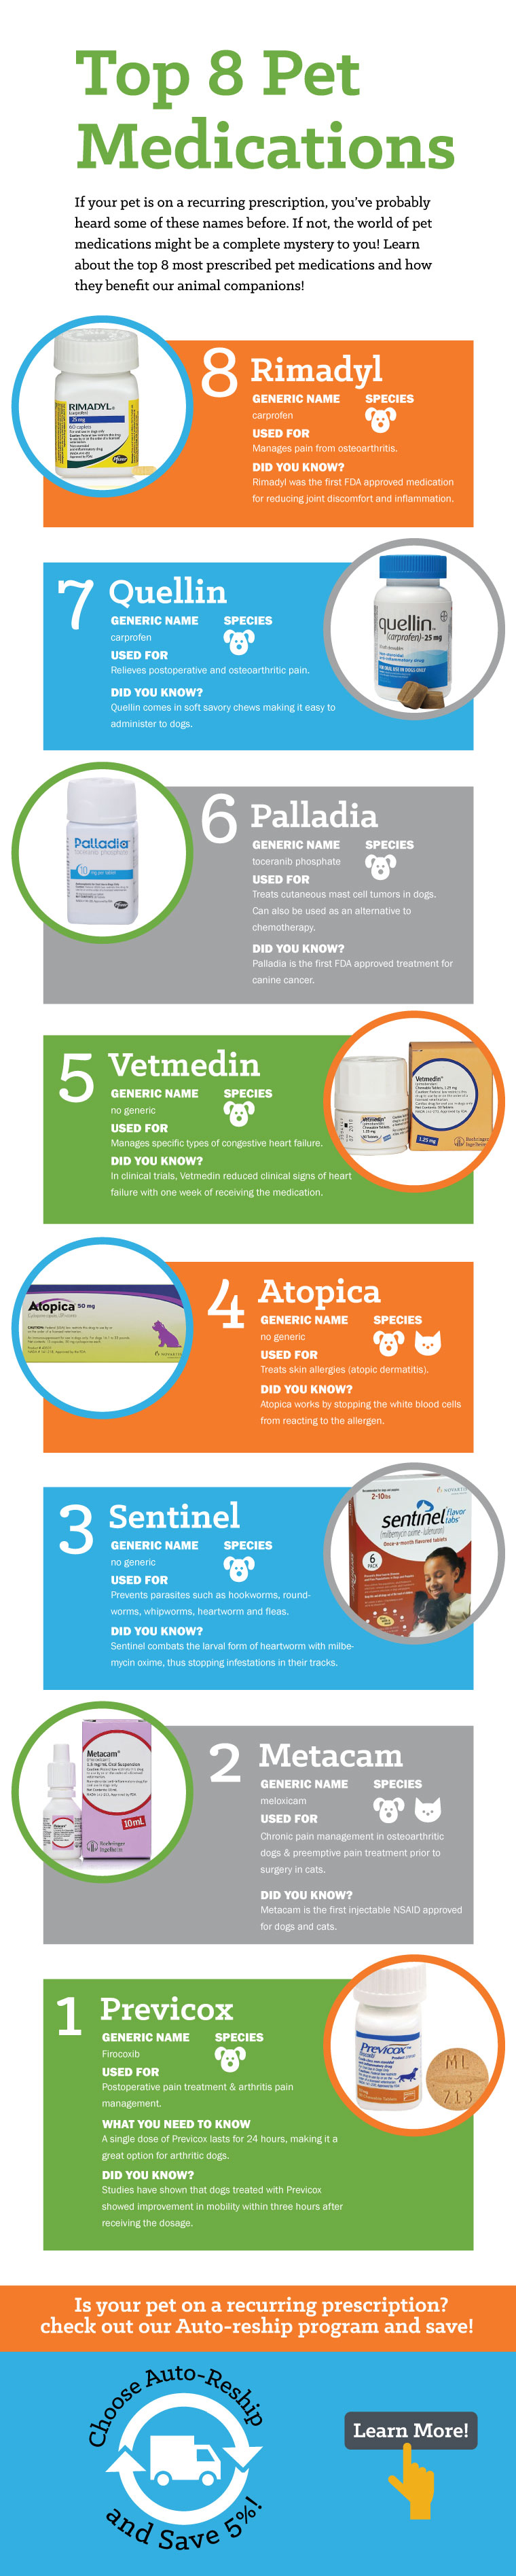 Top Pet Medications